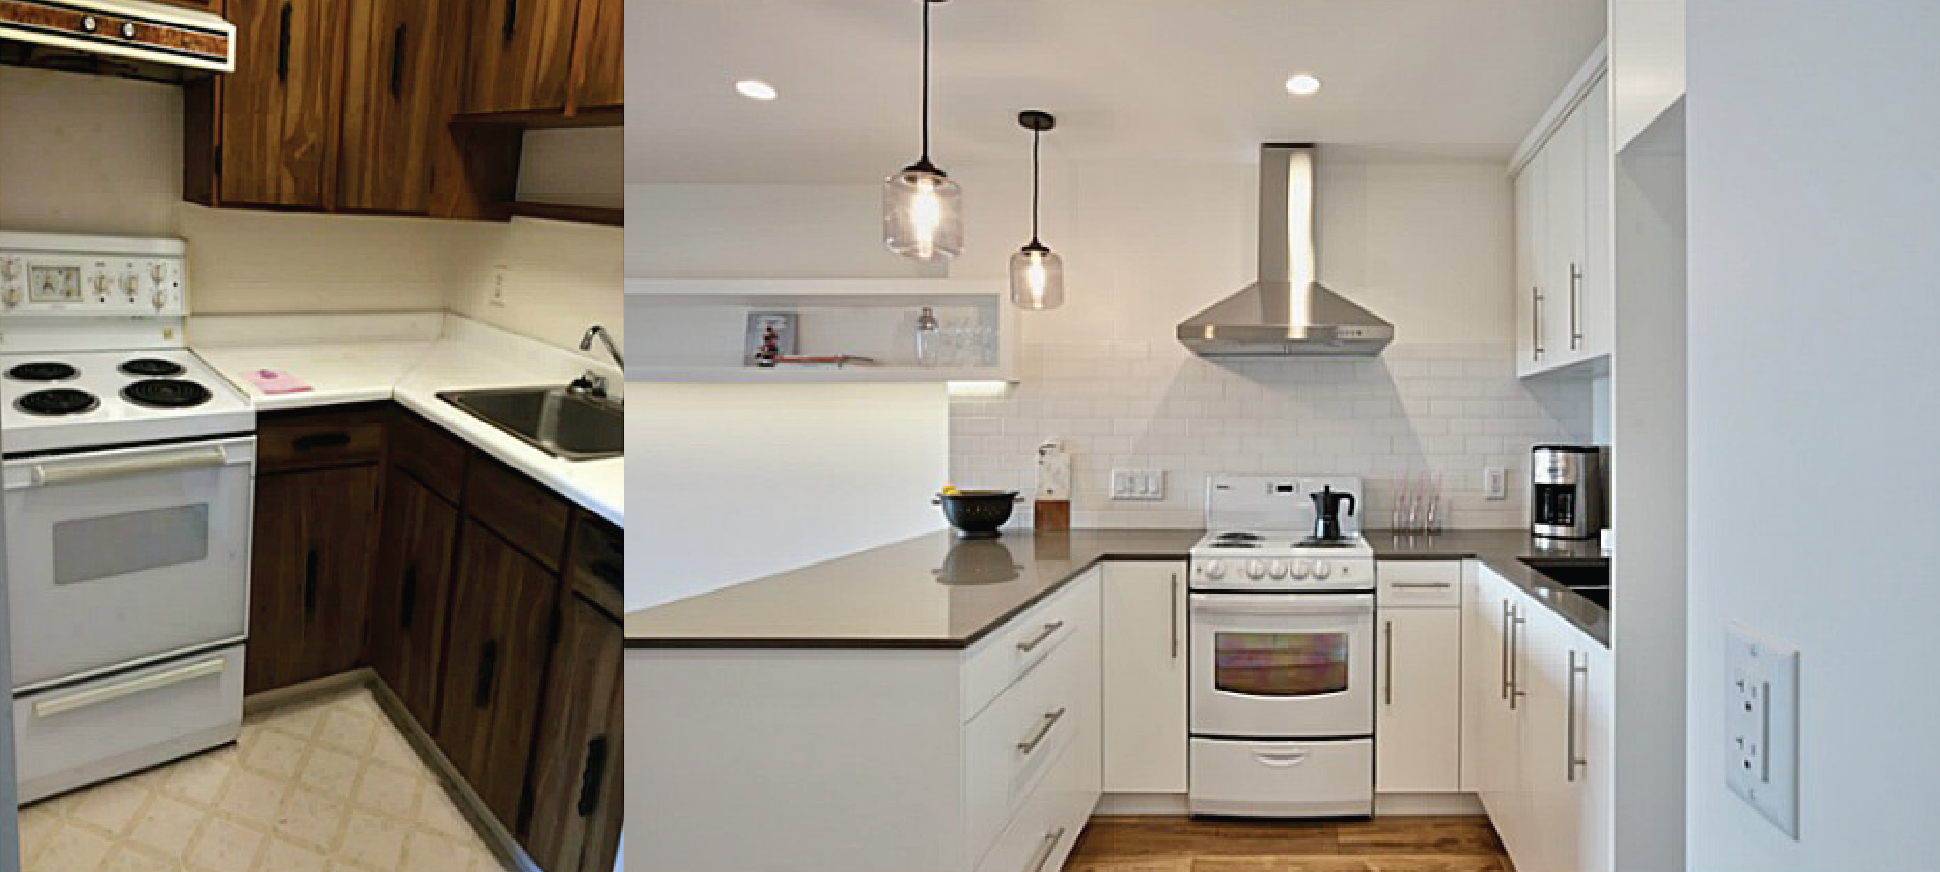 small kitchen remodel before and after for stunning and fresh outlook